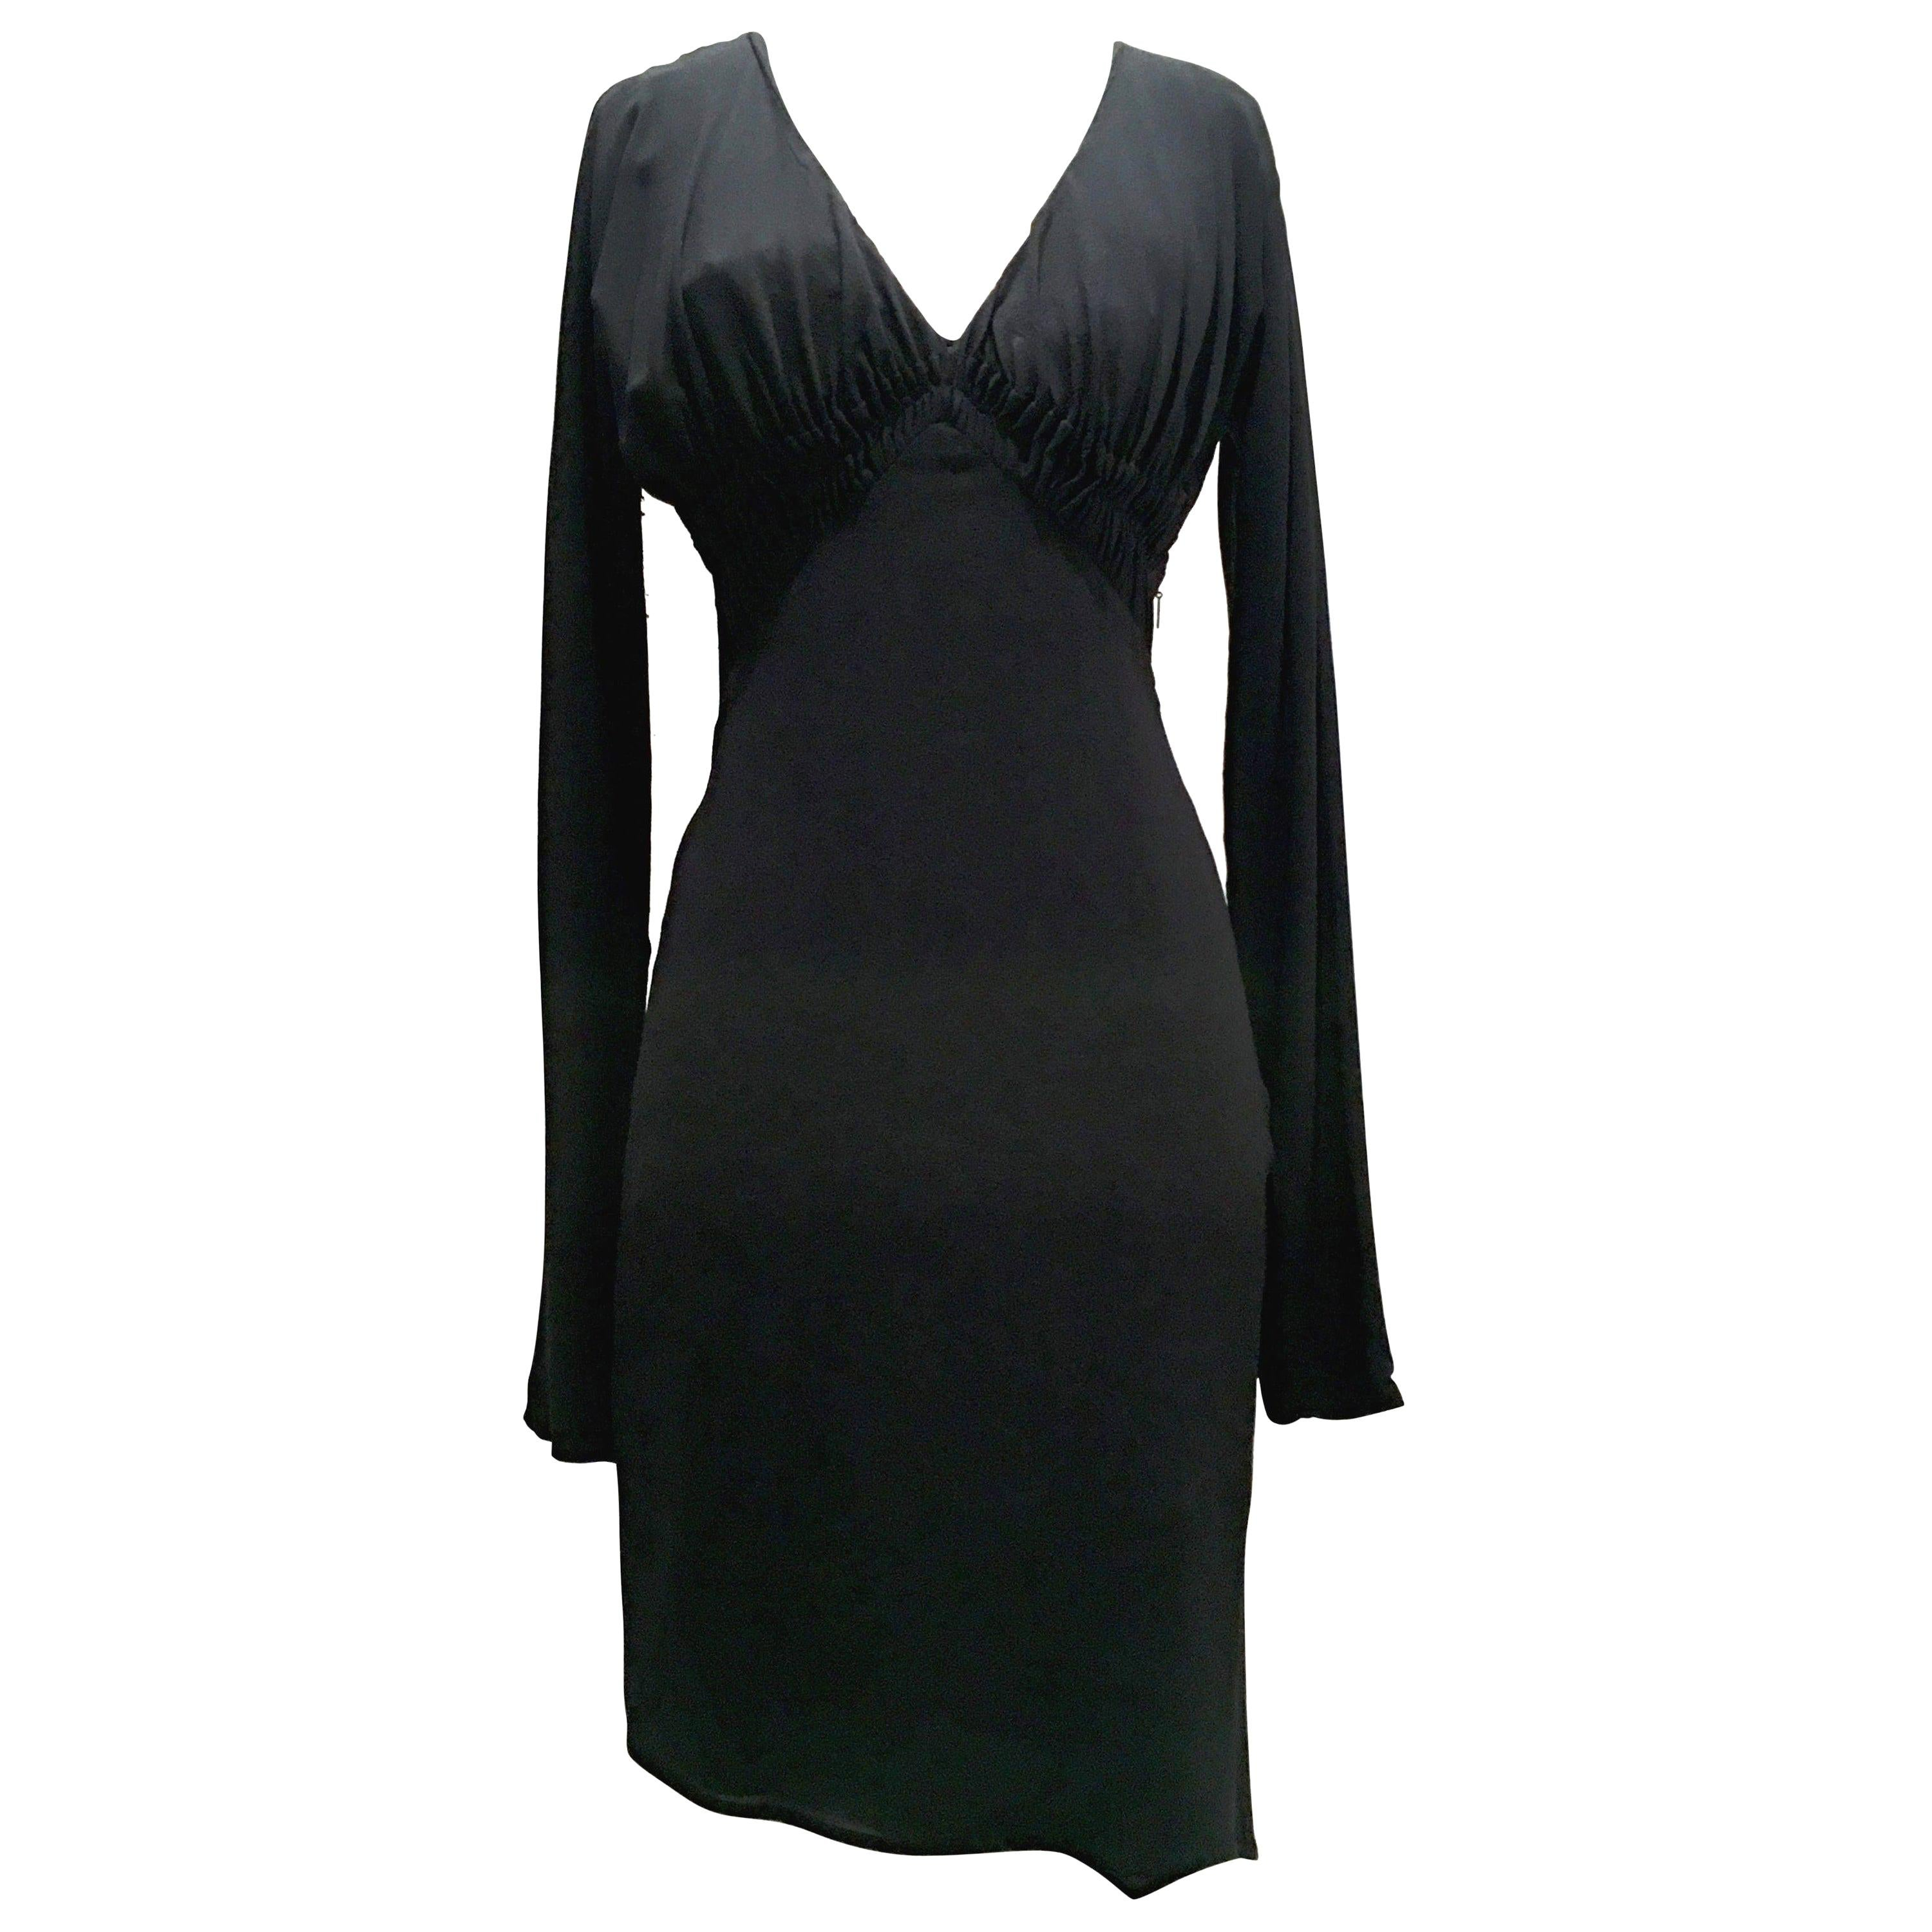 2003 Italian Silk Long Sleeve Deep Plunge Black Dress By Tom Ford For Gucci-42